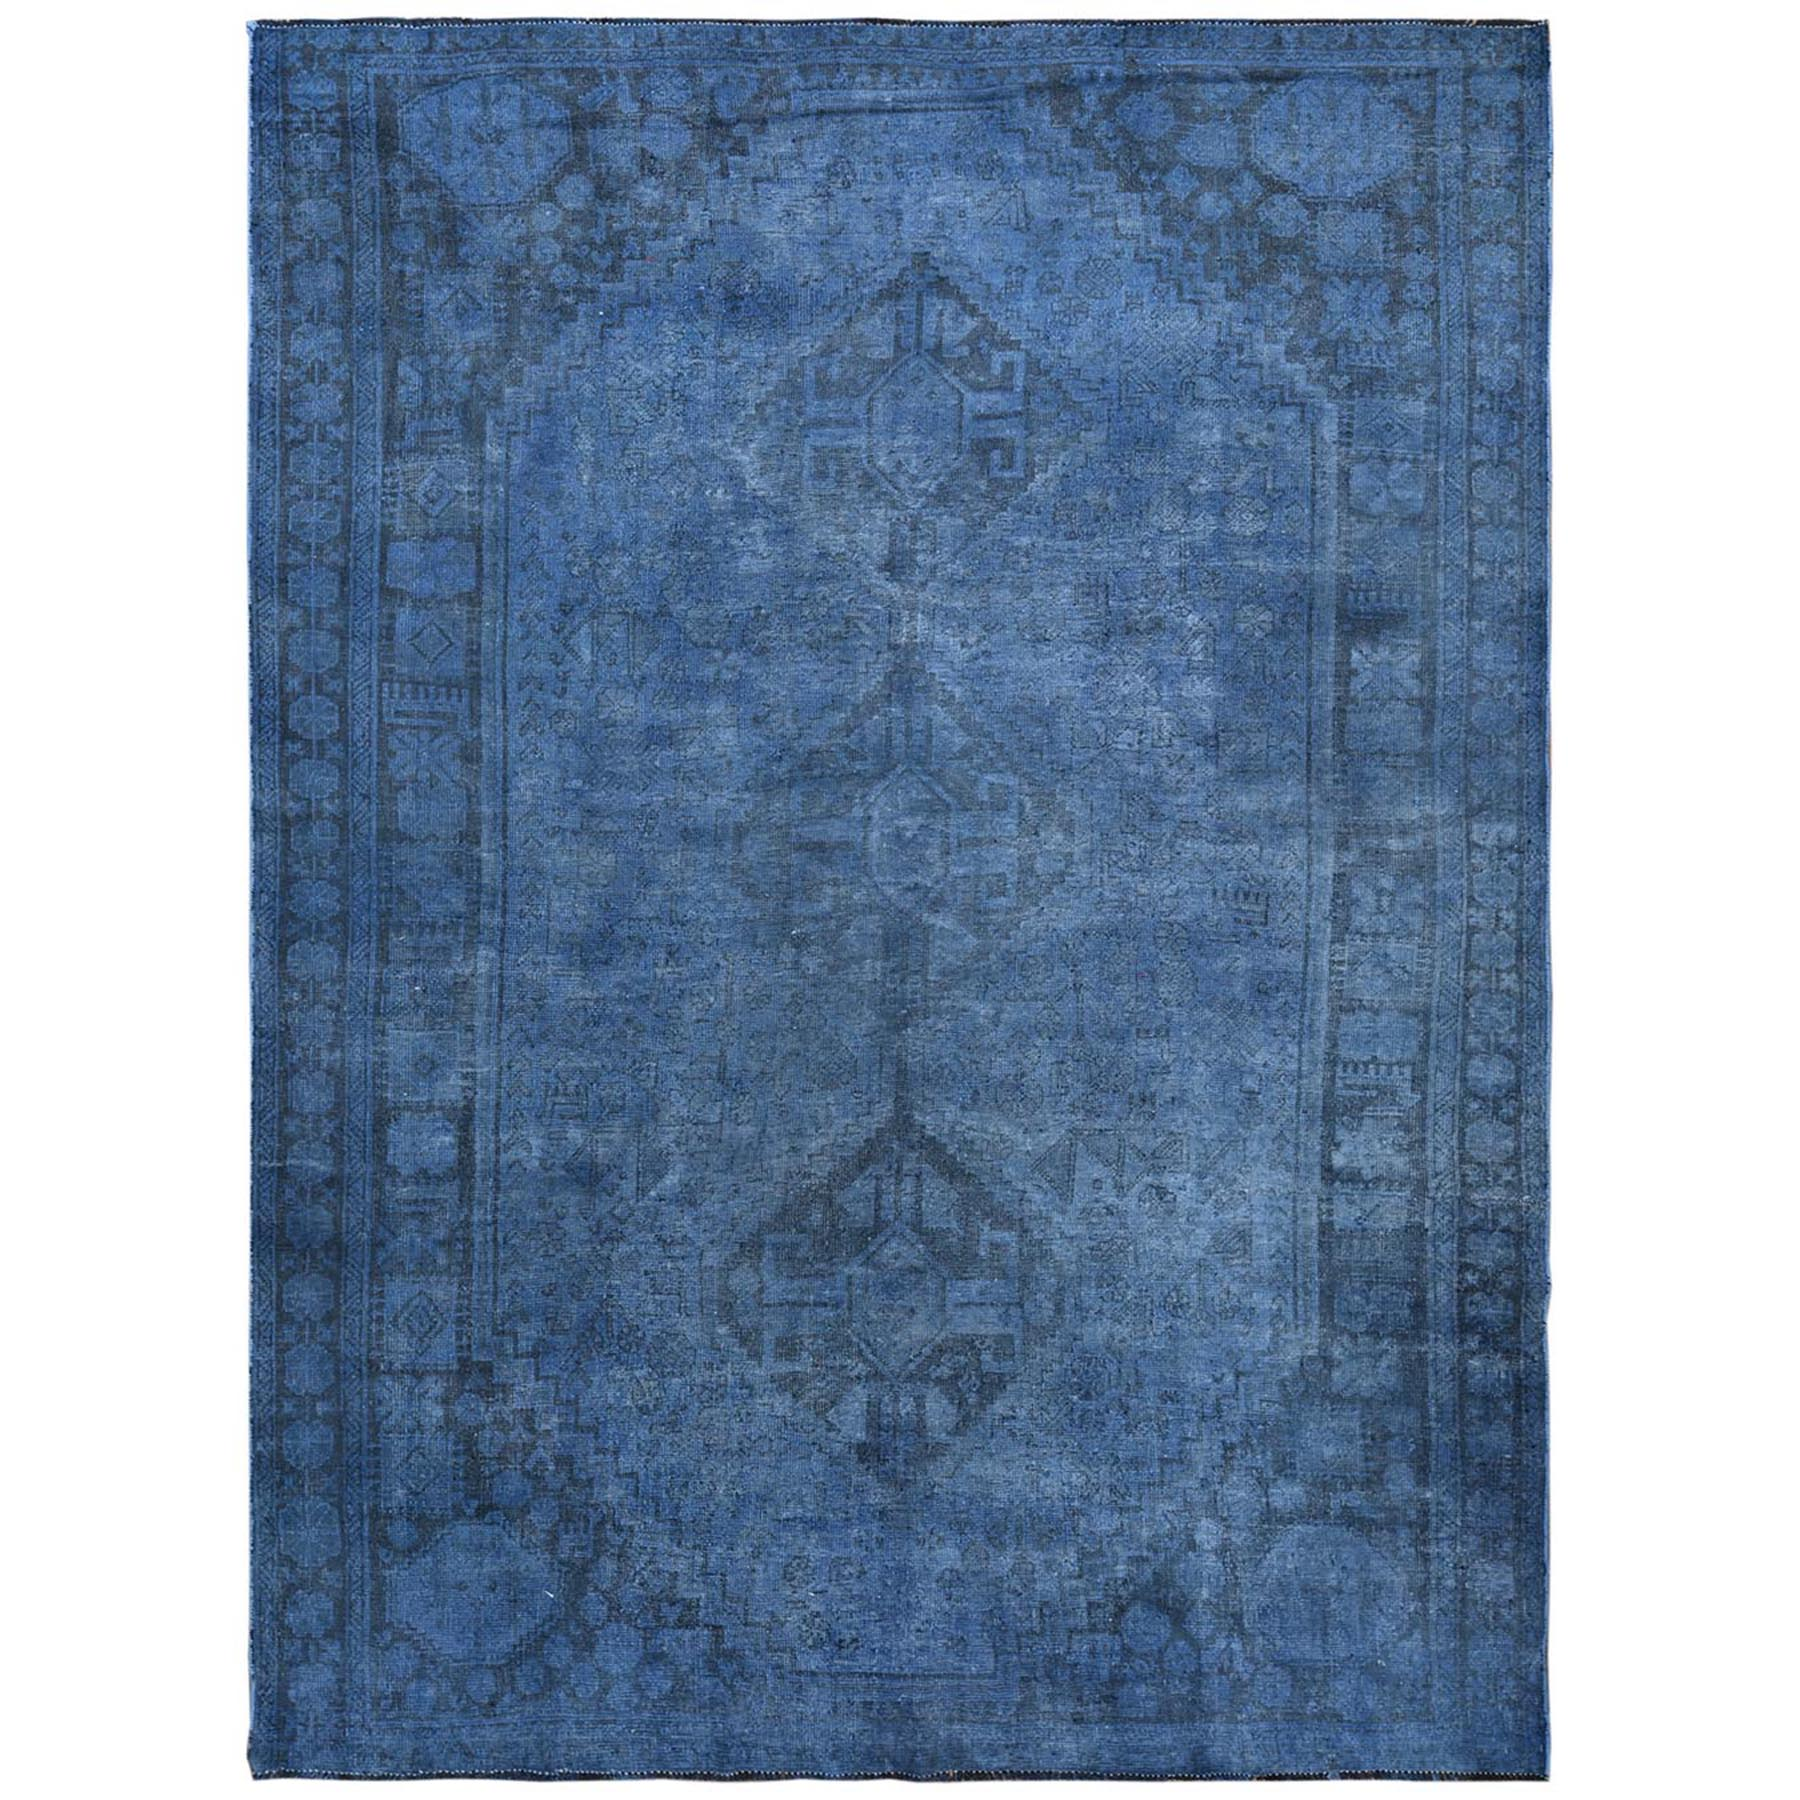 Fetneh Collection And Vintage Overdyed Collection Hand Knotted Blue Rug No: 1122126